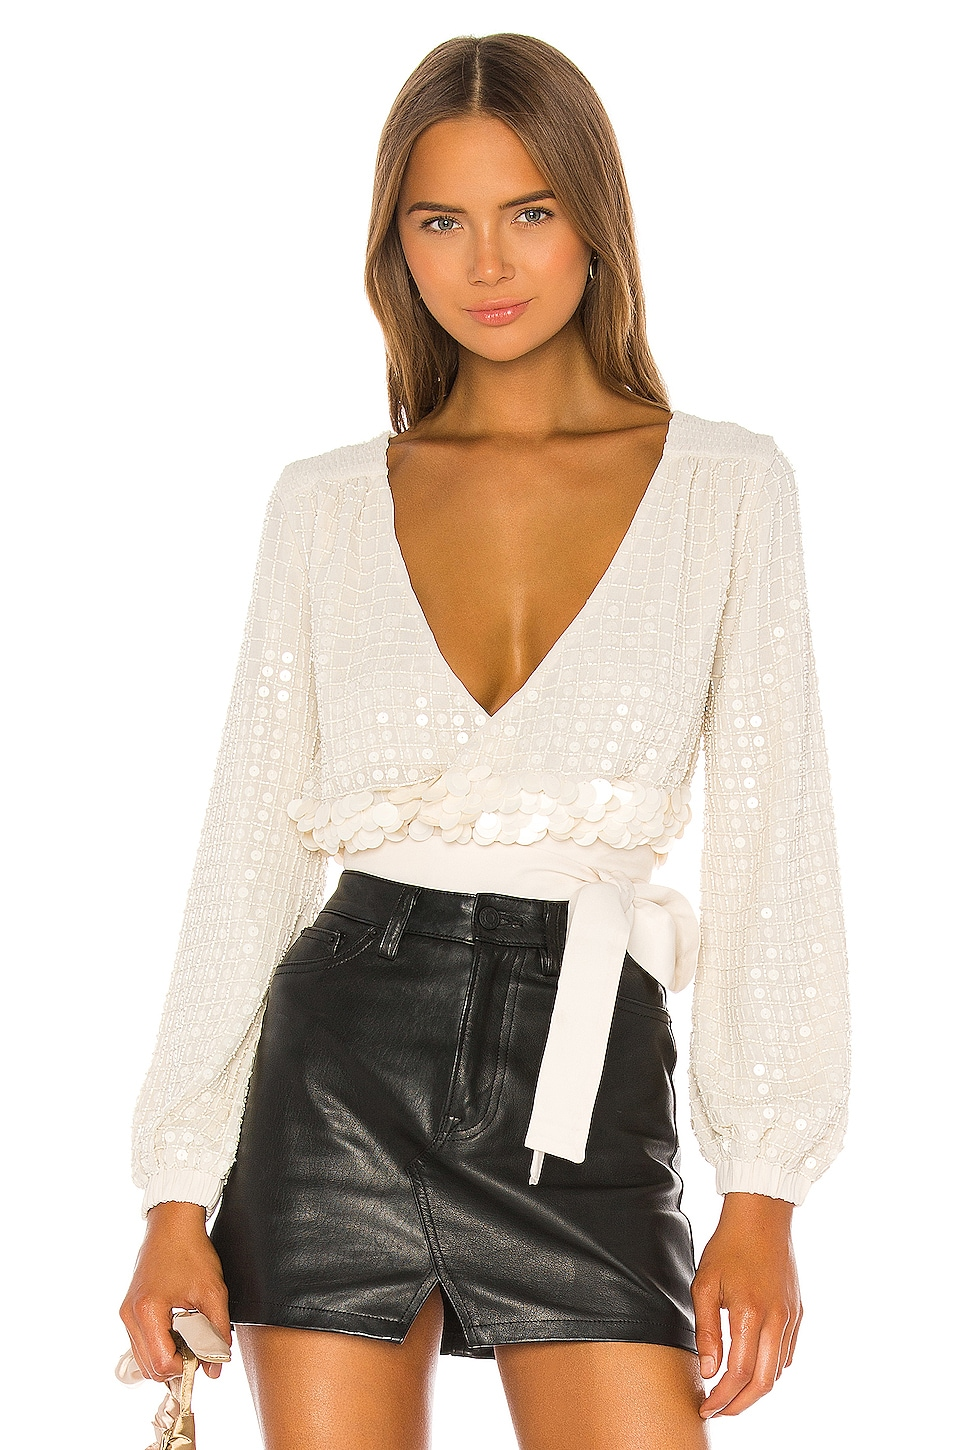 X by NBD Bea Embellished Top in Sand Ivory